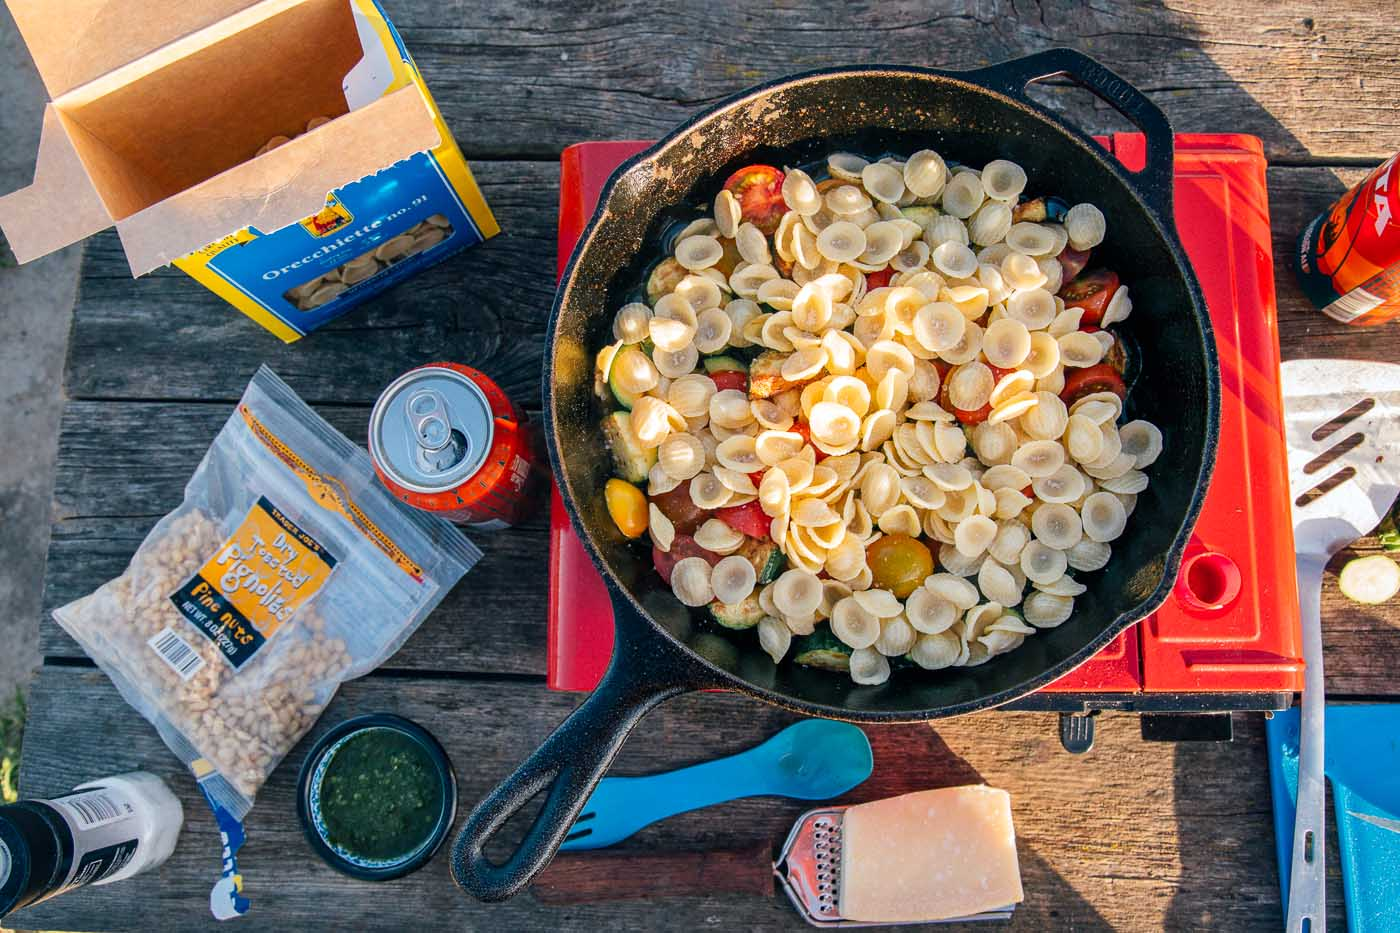 Overhead view of pasta in a cast iron skillet on a camping stove. Other pasta ingredients such as cheese, pesto, and pine nuts are on the table.